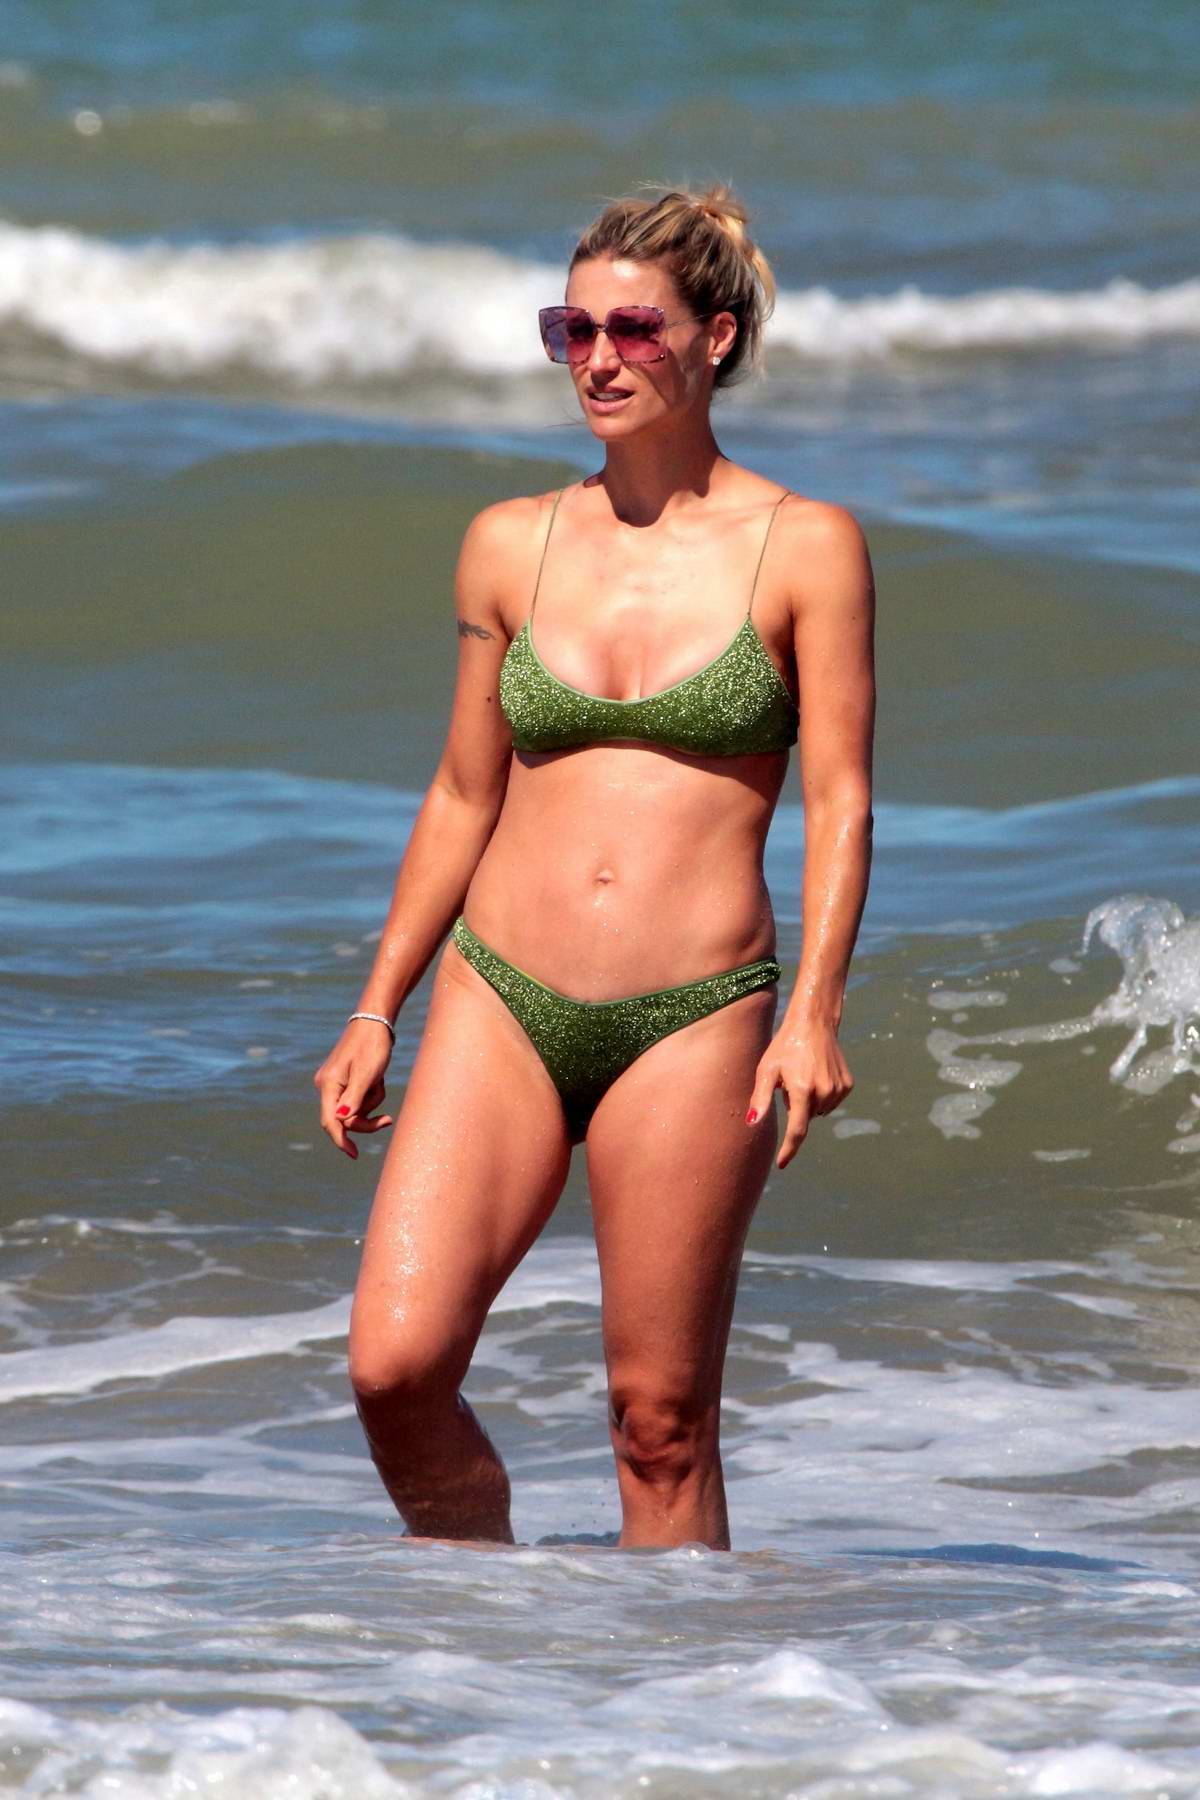 Michelle Hunziker spotted in a green bikini while on vacation with Tomaso Trussardi in Milano Marittima, Italy